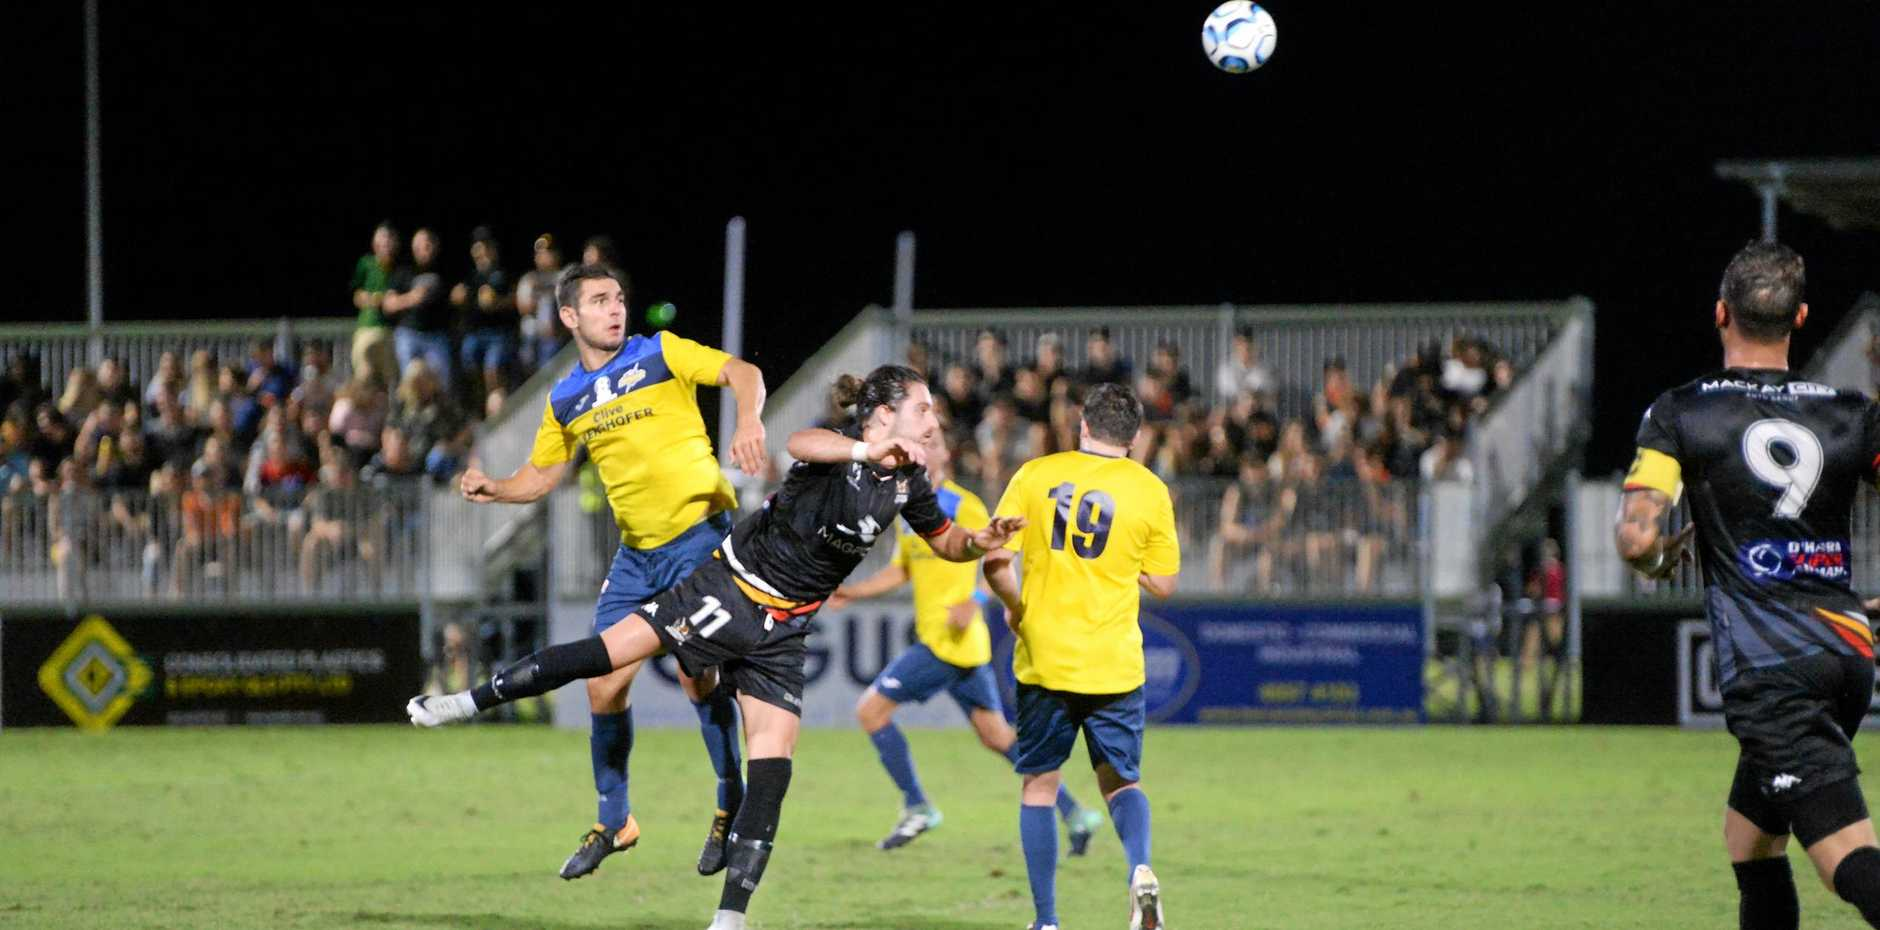 Magpies Crusaders striker Kyle Markham flies for a header against SWQ Thunder in round seven of the NPL Queensland at Sologinkin Oval.